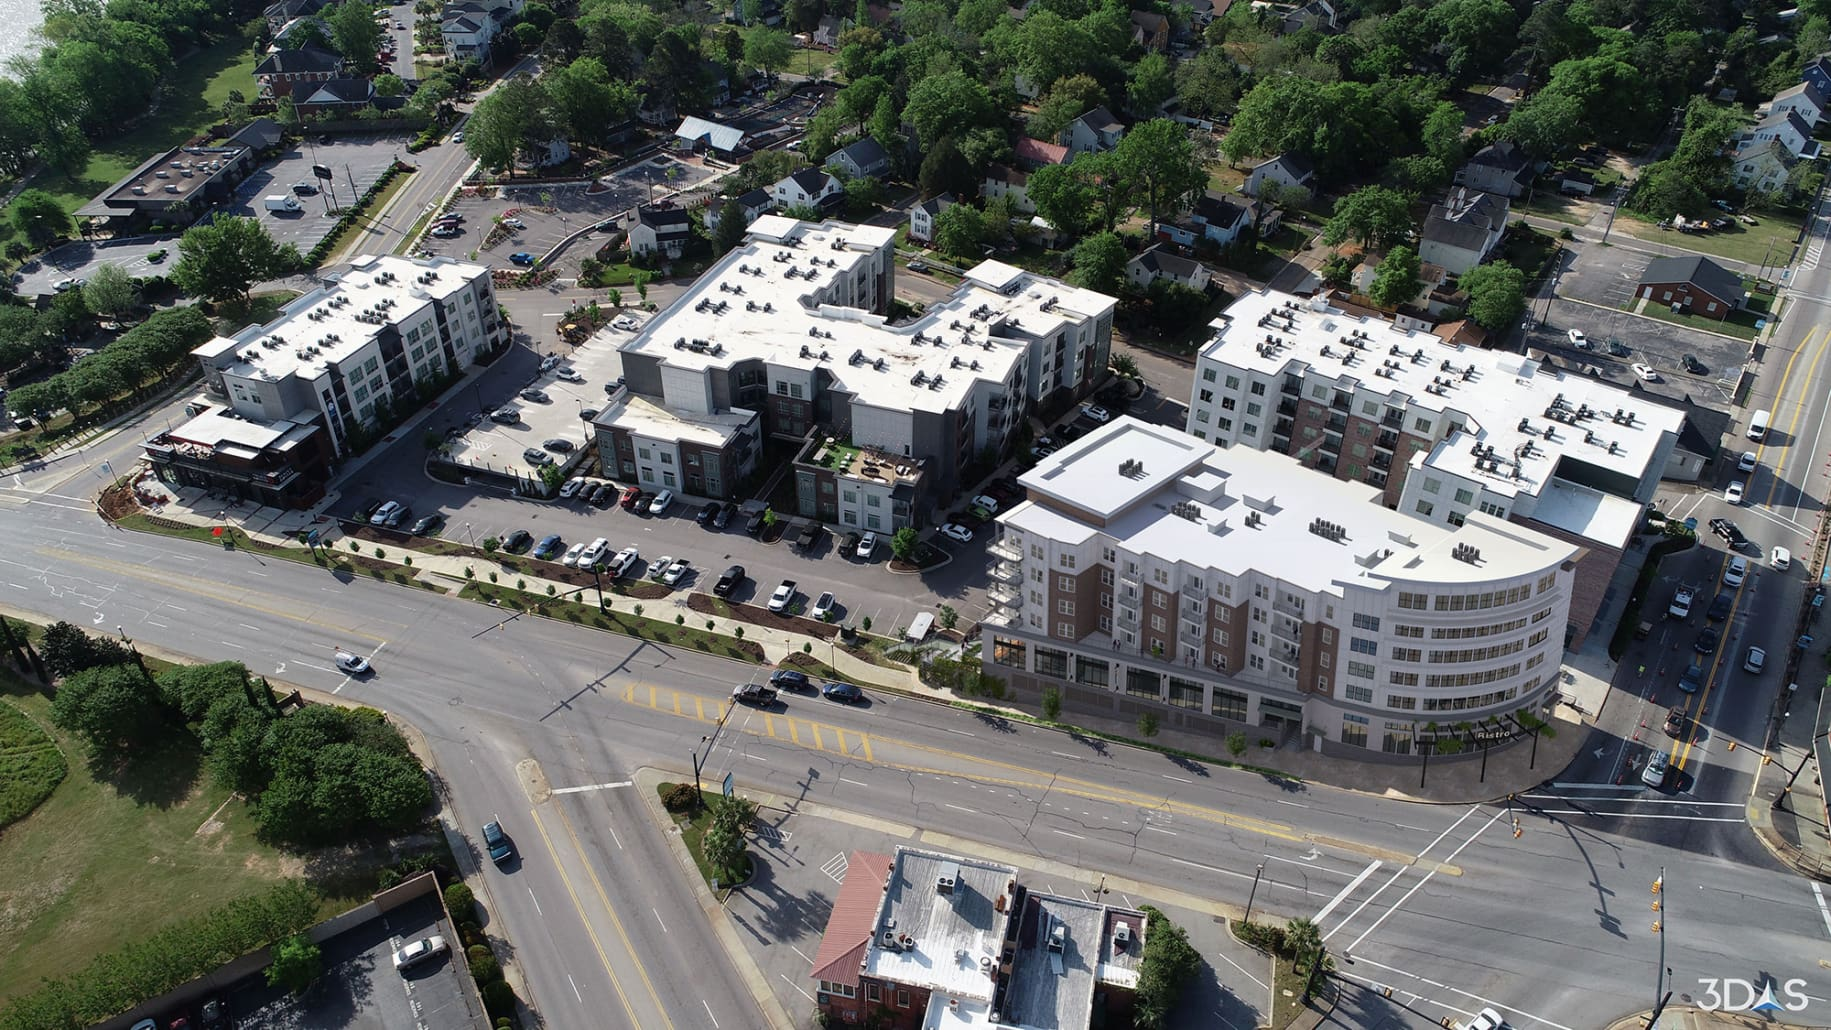 Brookland Aerial Drone Photo Montage with 4 West 3D Rendering